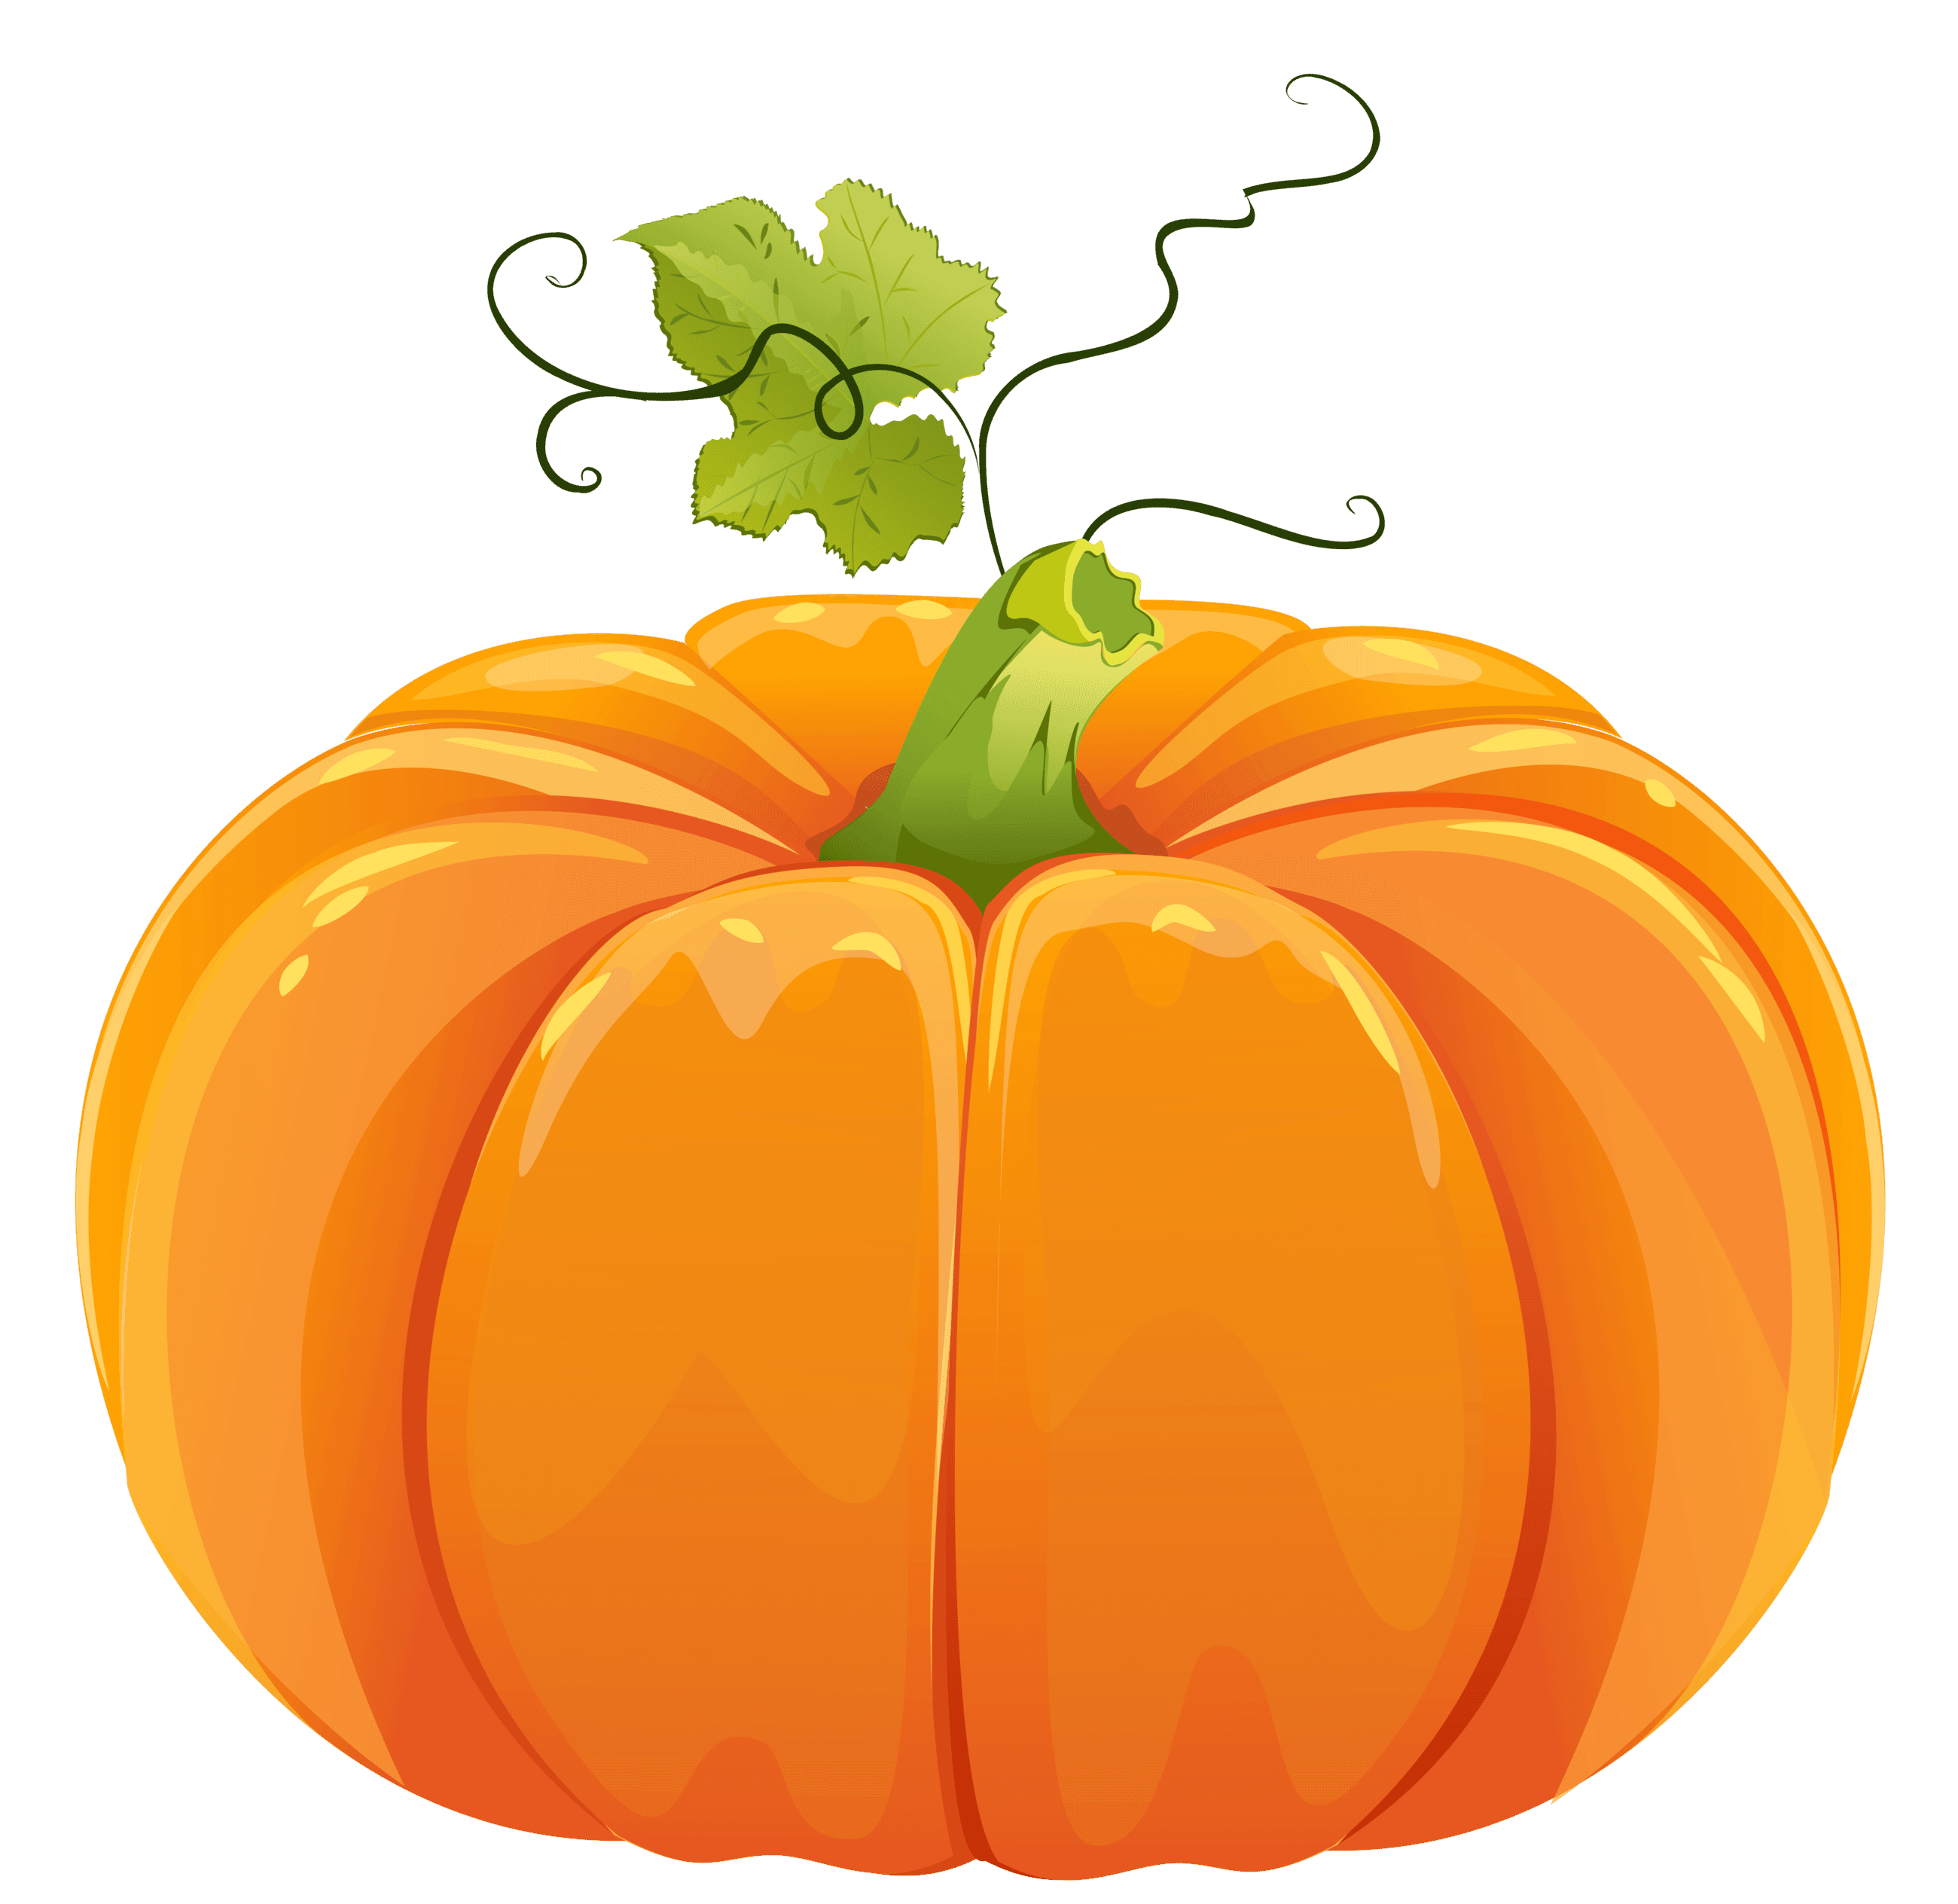 Laconia nh storytime birth. Preschool clipart halloween party